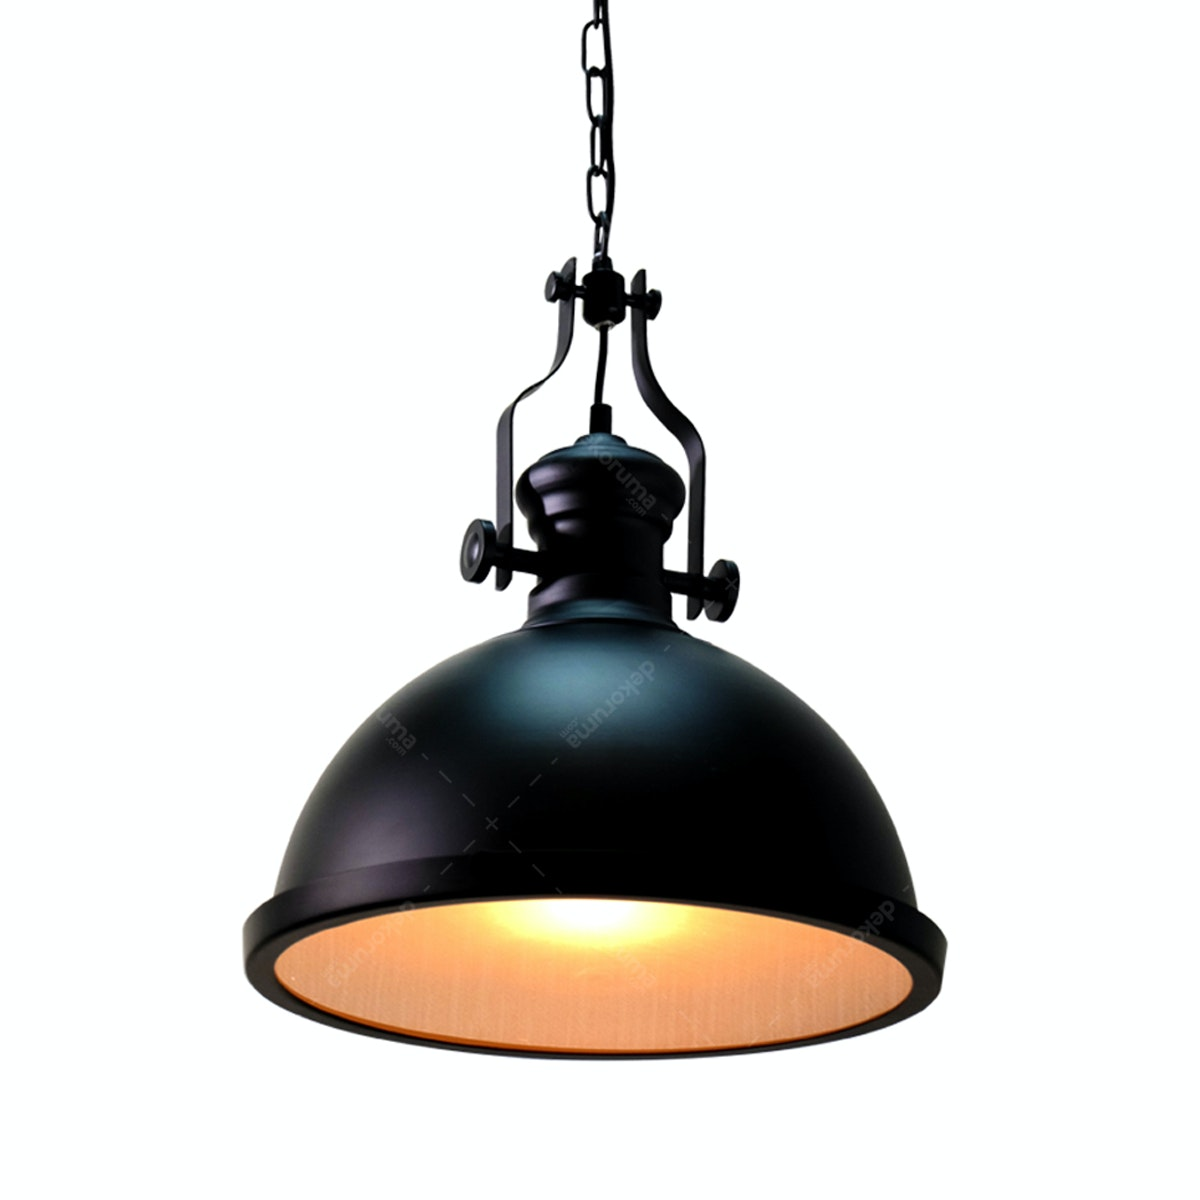 Lightology Vania Industrial Pendant / Lampu Gantung